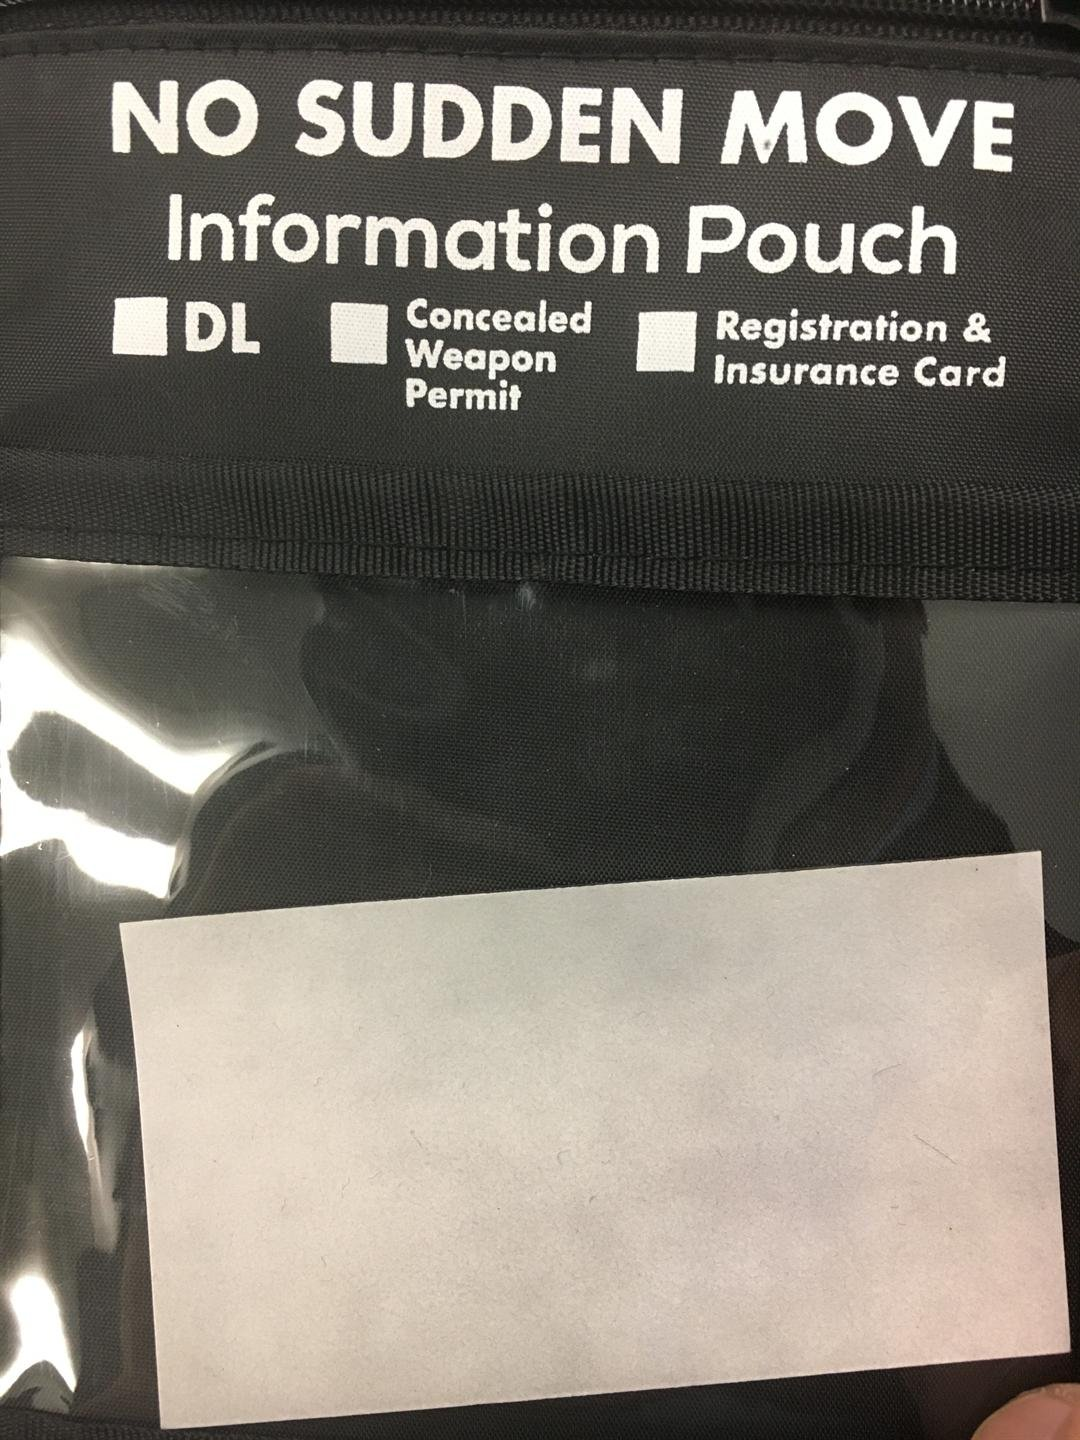 Retired officer creates No Sudden Move pouch